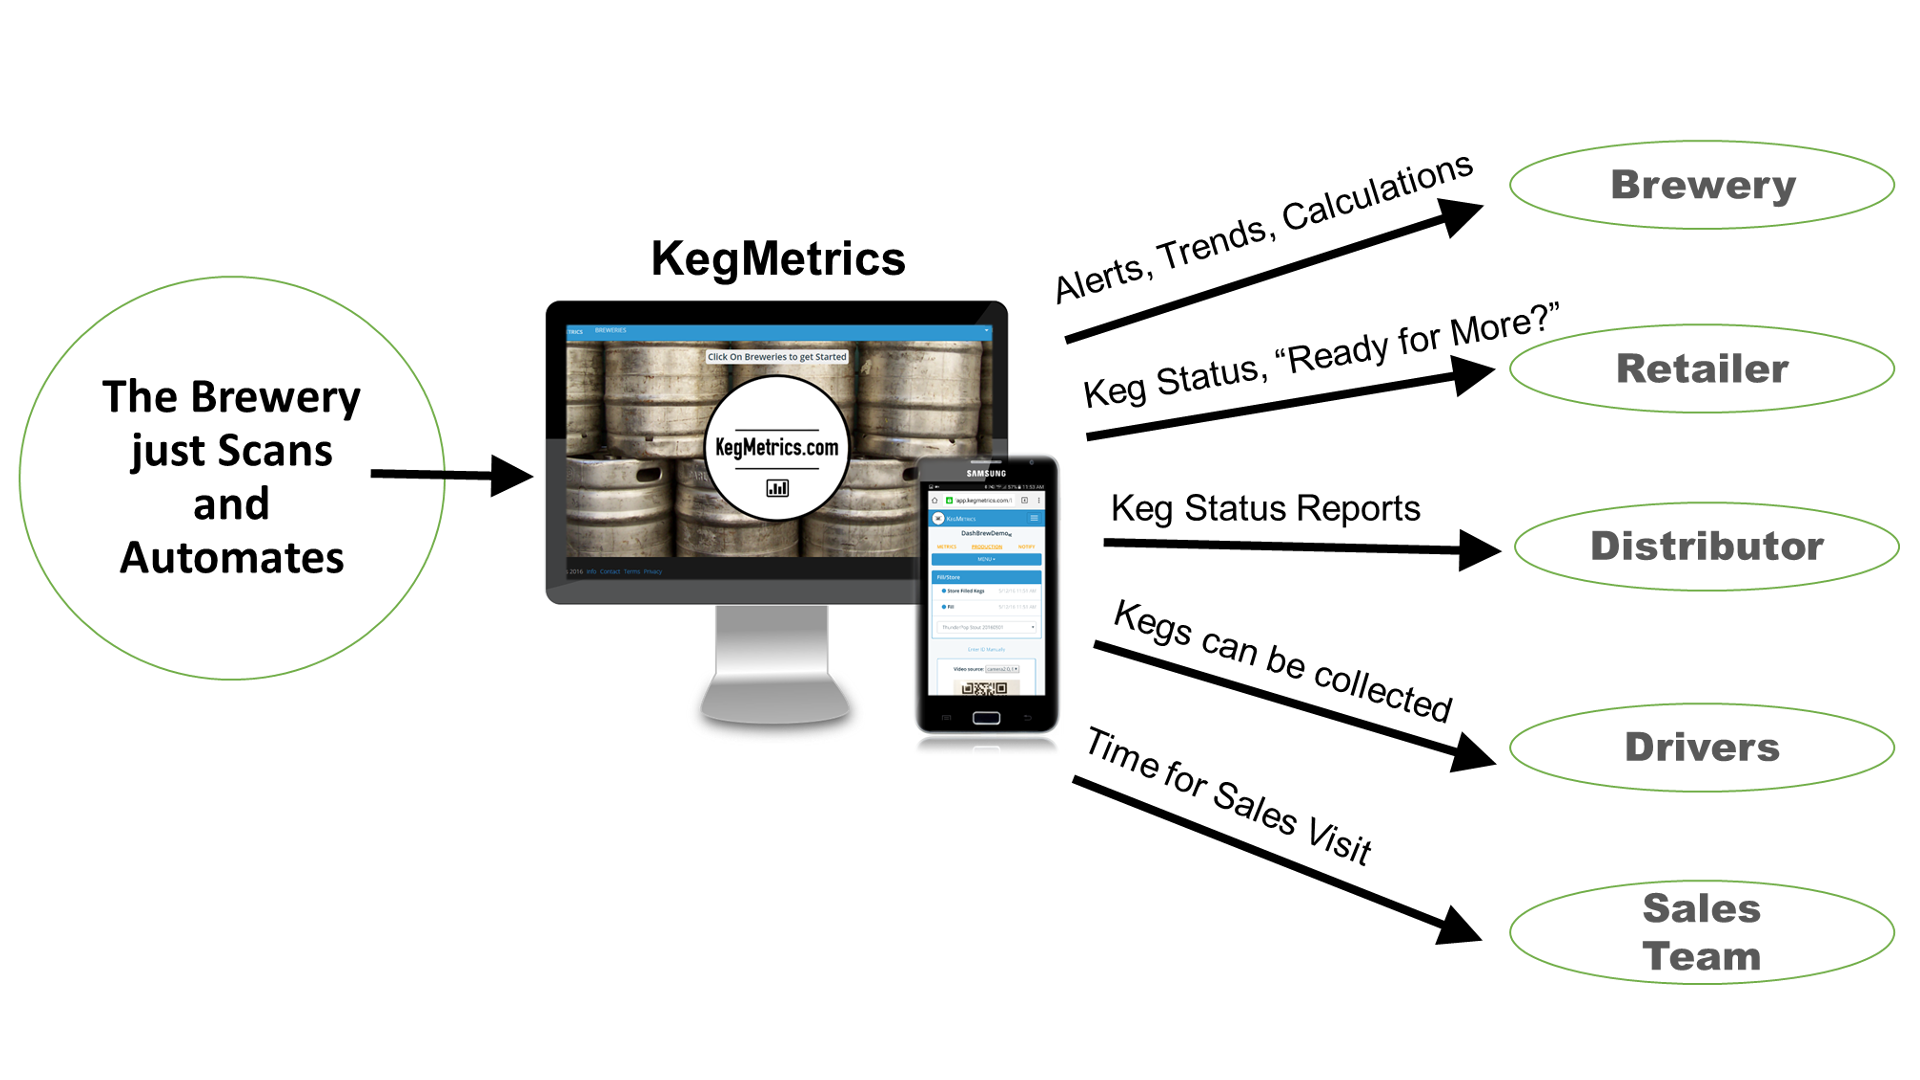 The brewery just scans and automates communication to it's partners employees and customers.